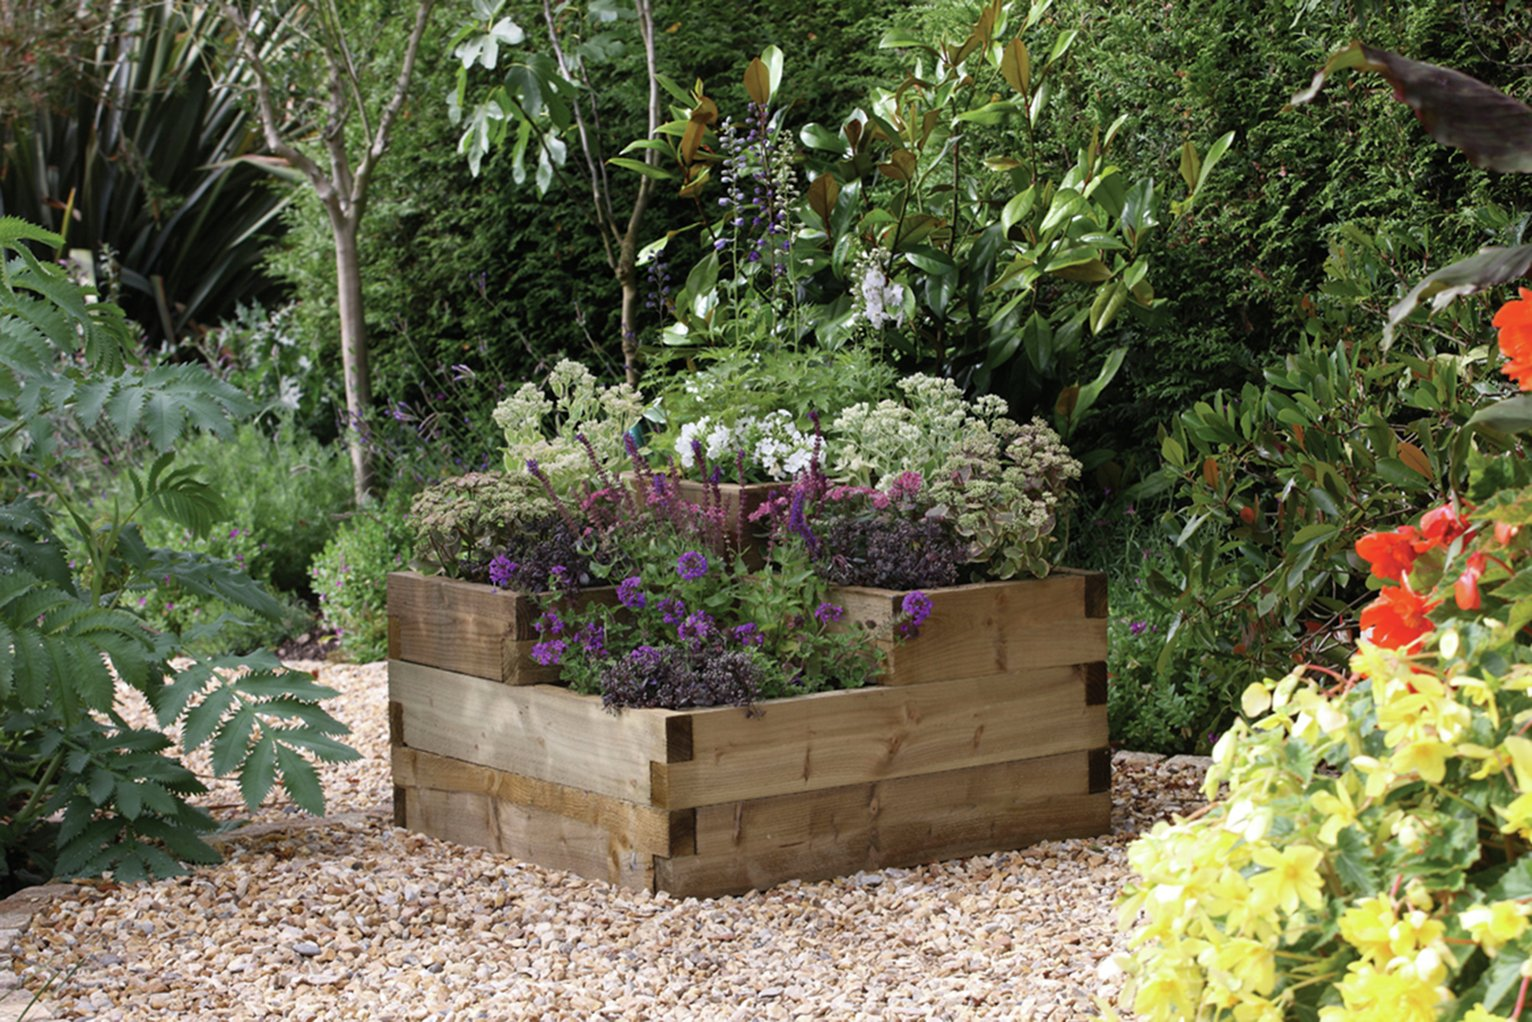 Forest Caledonian Tiered Raised Bed Planter.